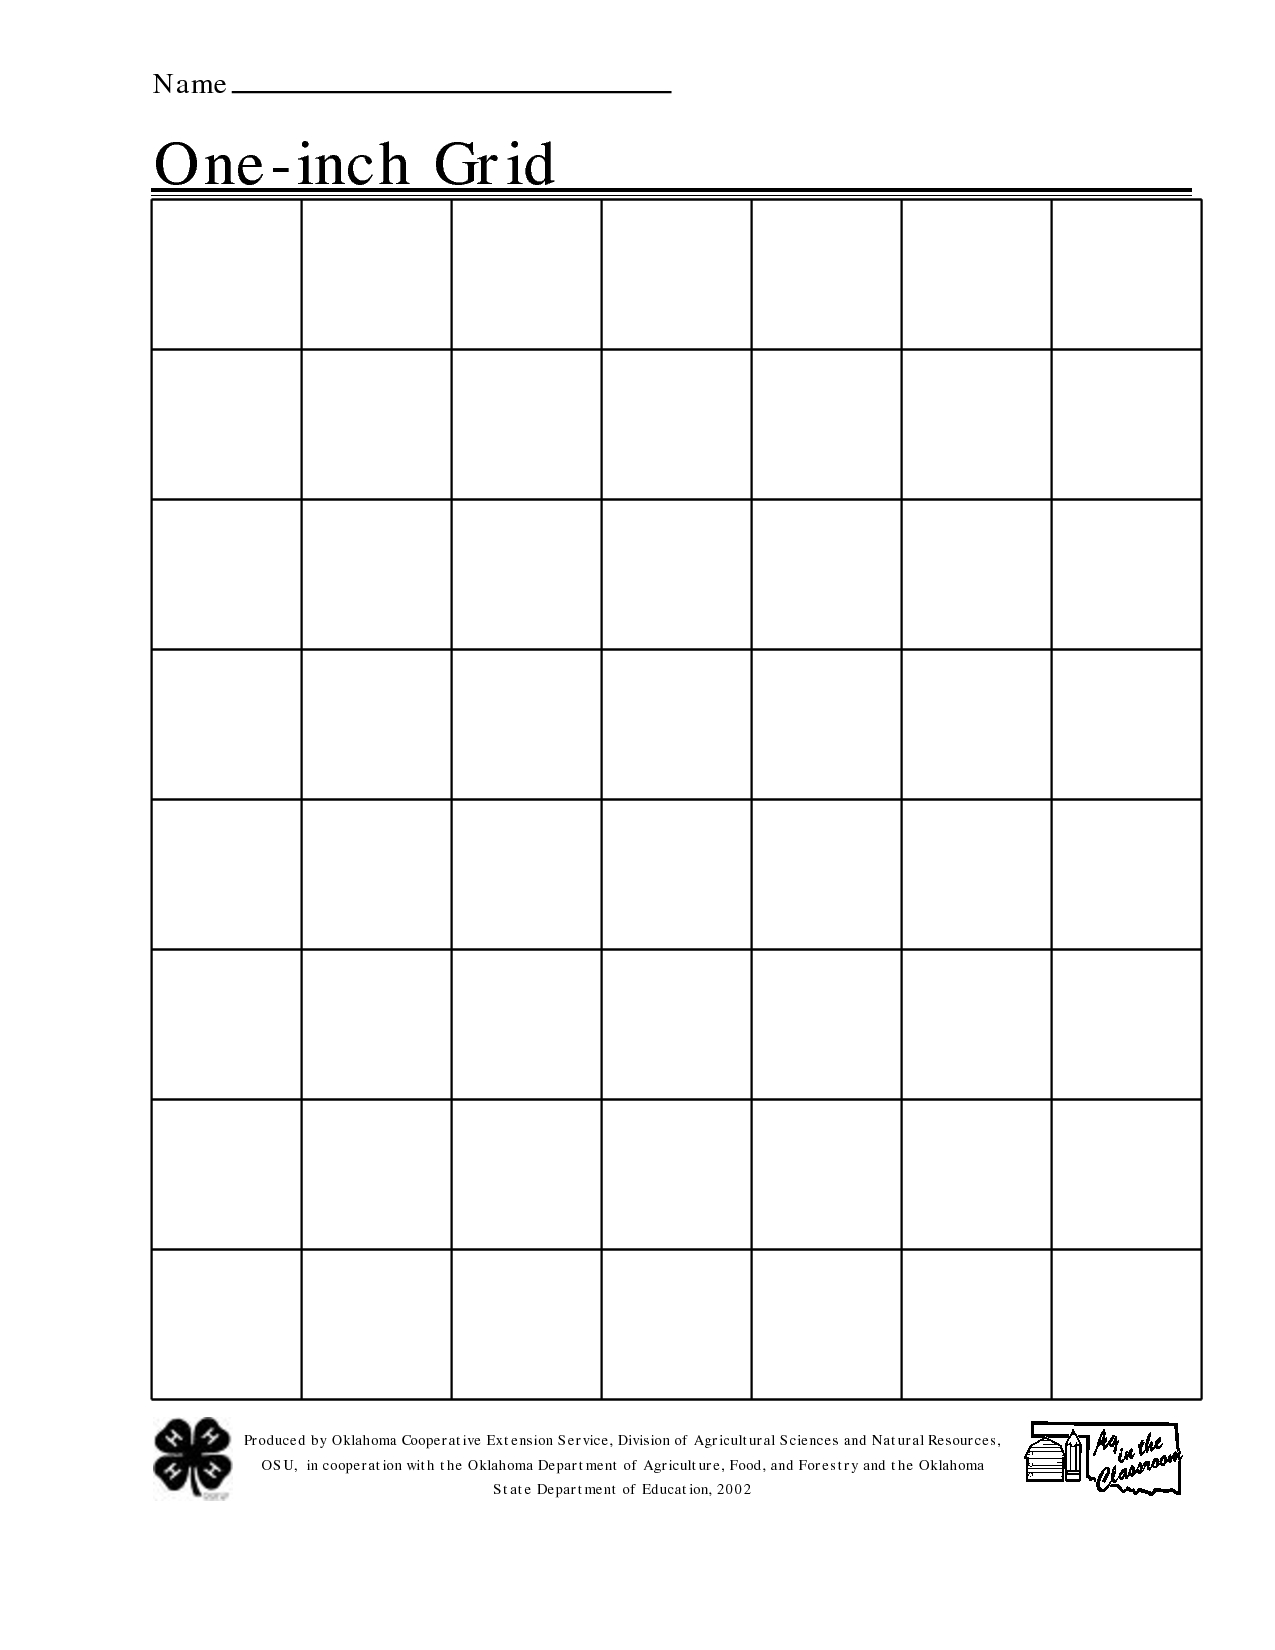 Free Printable 1 Inch Grid Paper | Math | Pinterest | Printable - Free Printable Graph Paper 1 4 Inch